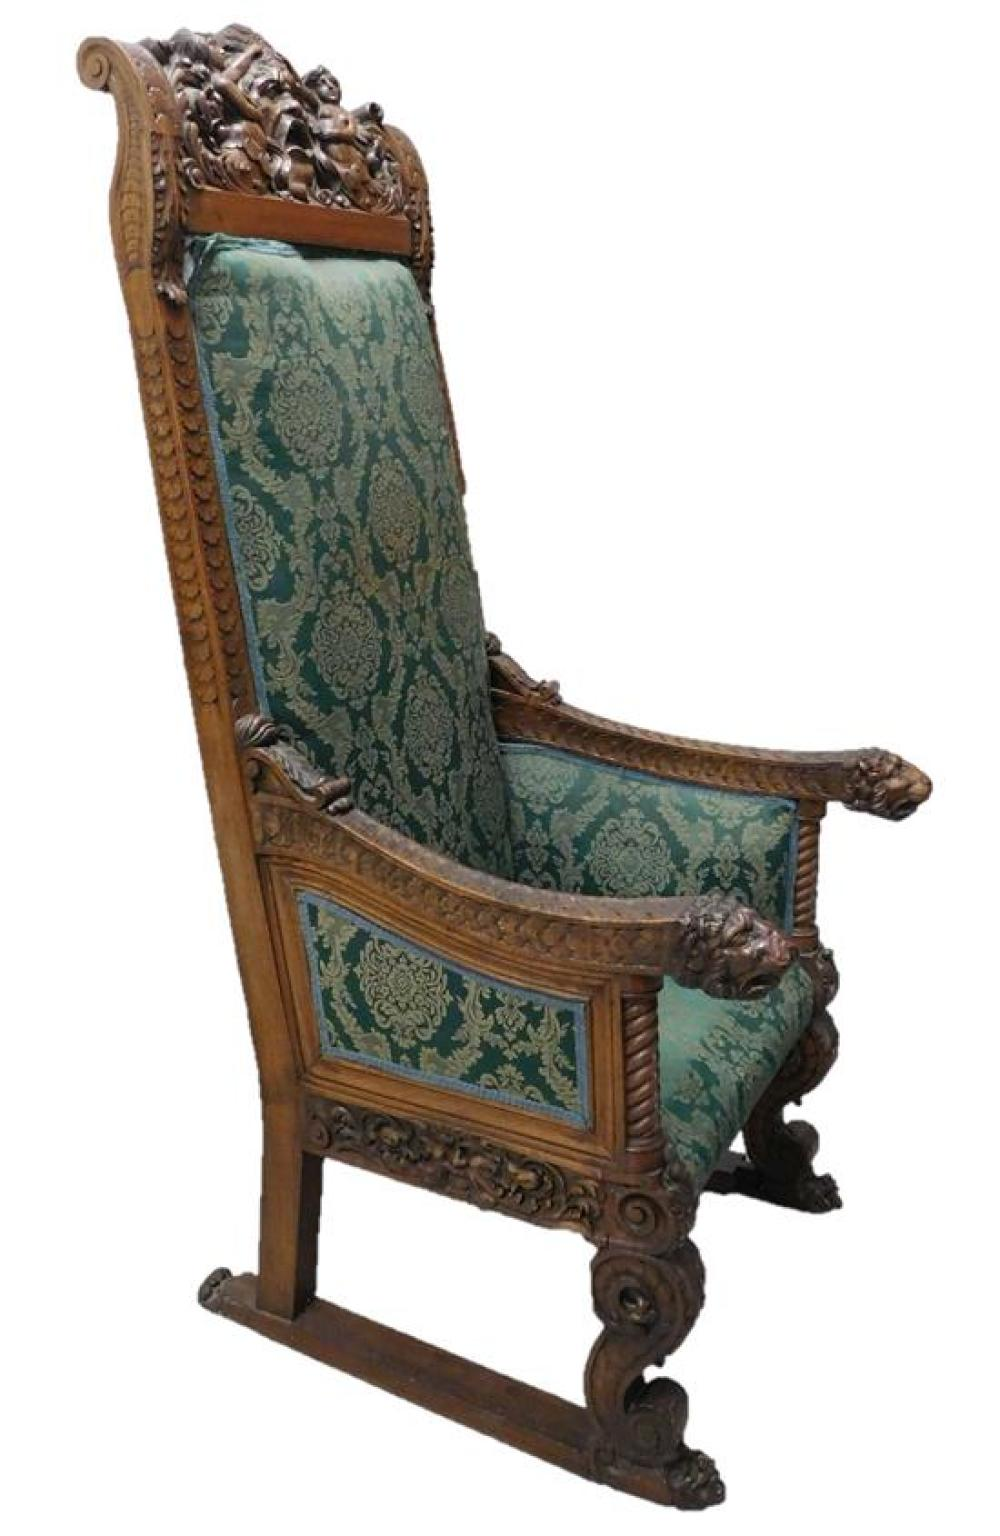 Monumental Baroque Revival throne chair, late 19th C., masque and mermaid carved crest, elaborate carvings throughout, green upholst...